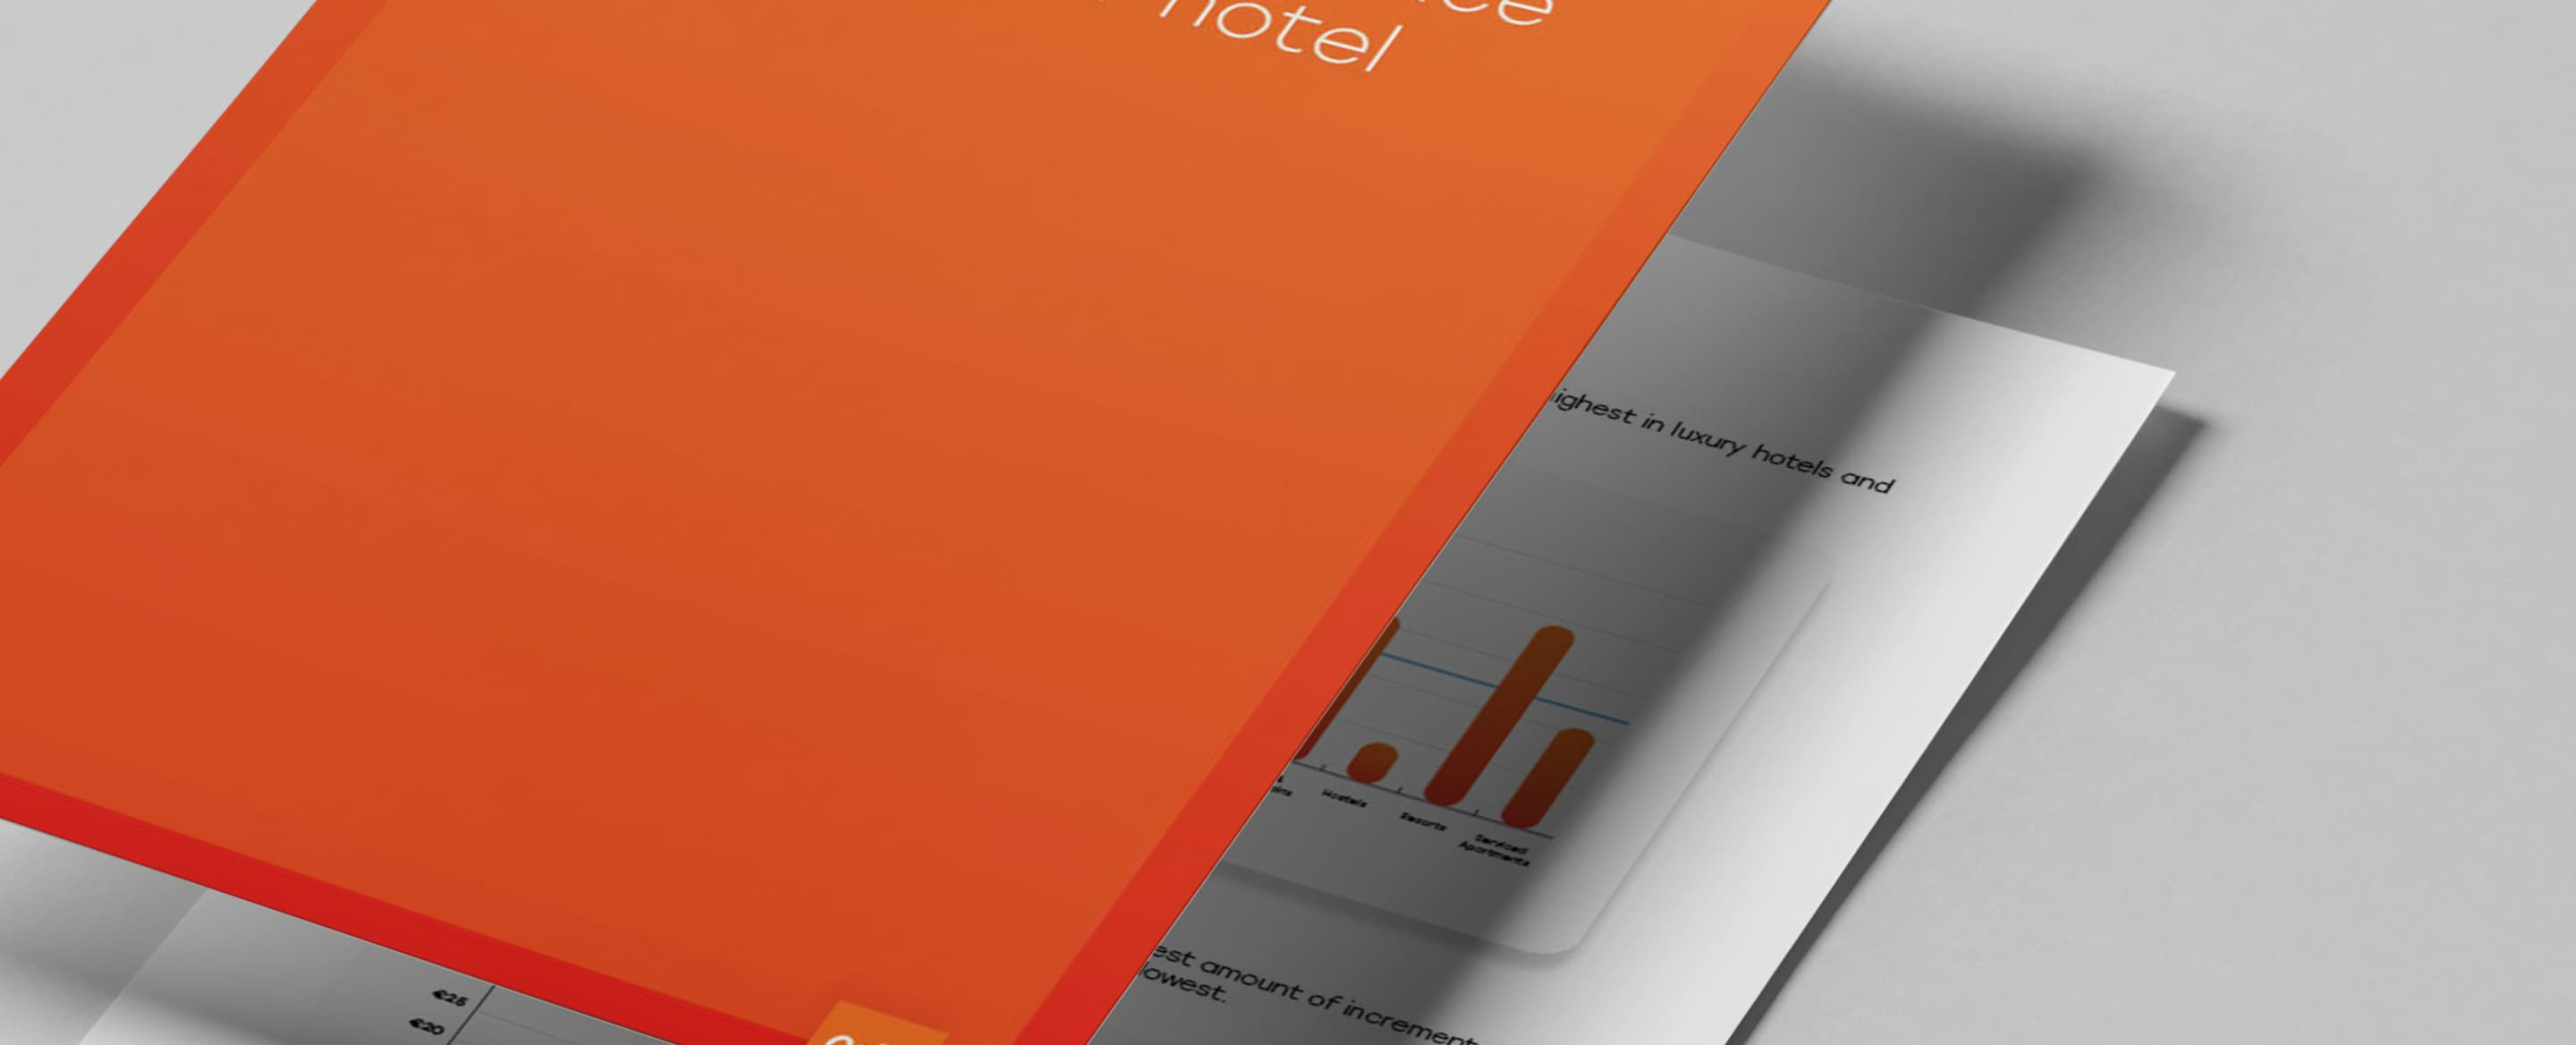 How much revenue can hotels generate from upselling?